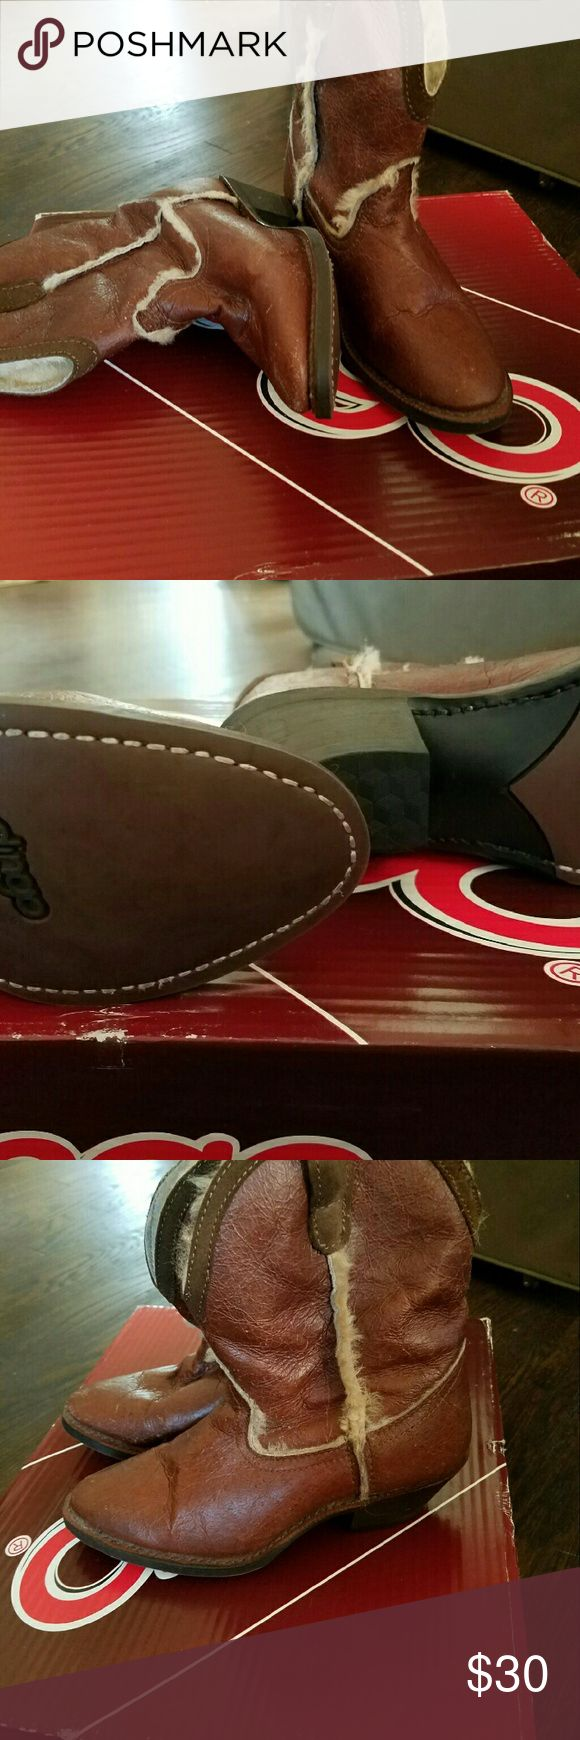 Fleece lined dingo boots New with box dingo Shoes Ankle Boots & Booties